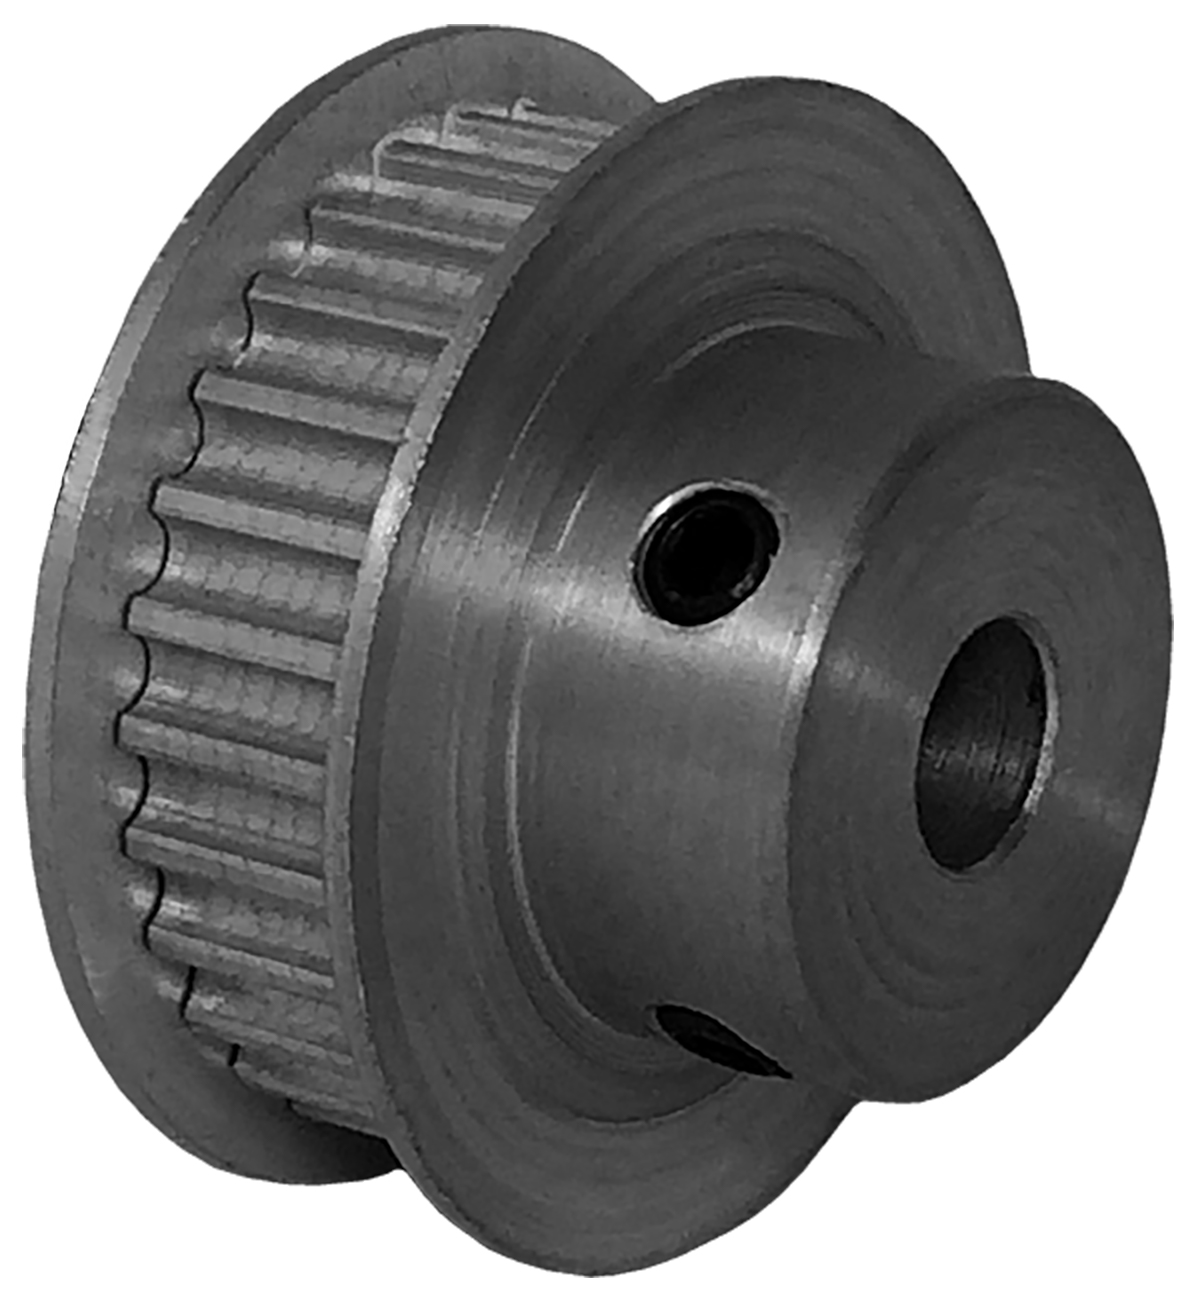 28-3M06M6FA6 - Aluminum Powerhouse®HTD® Pulleys